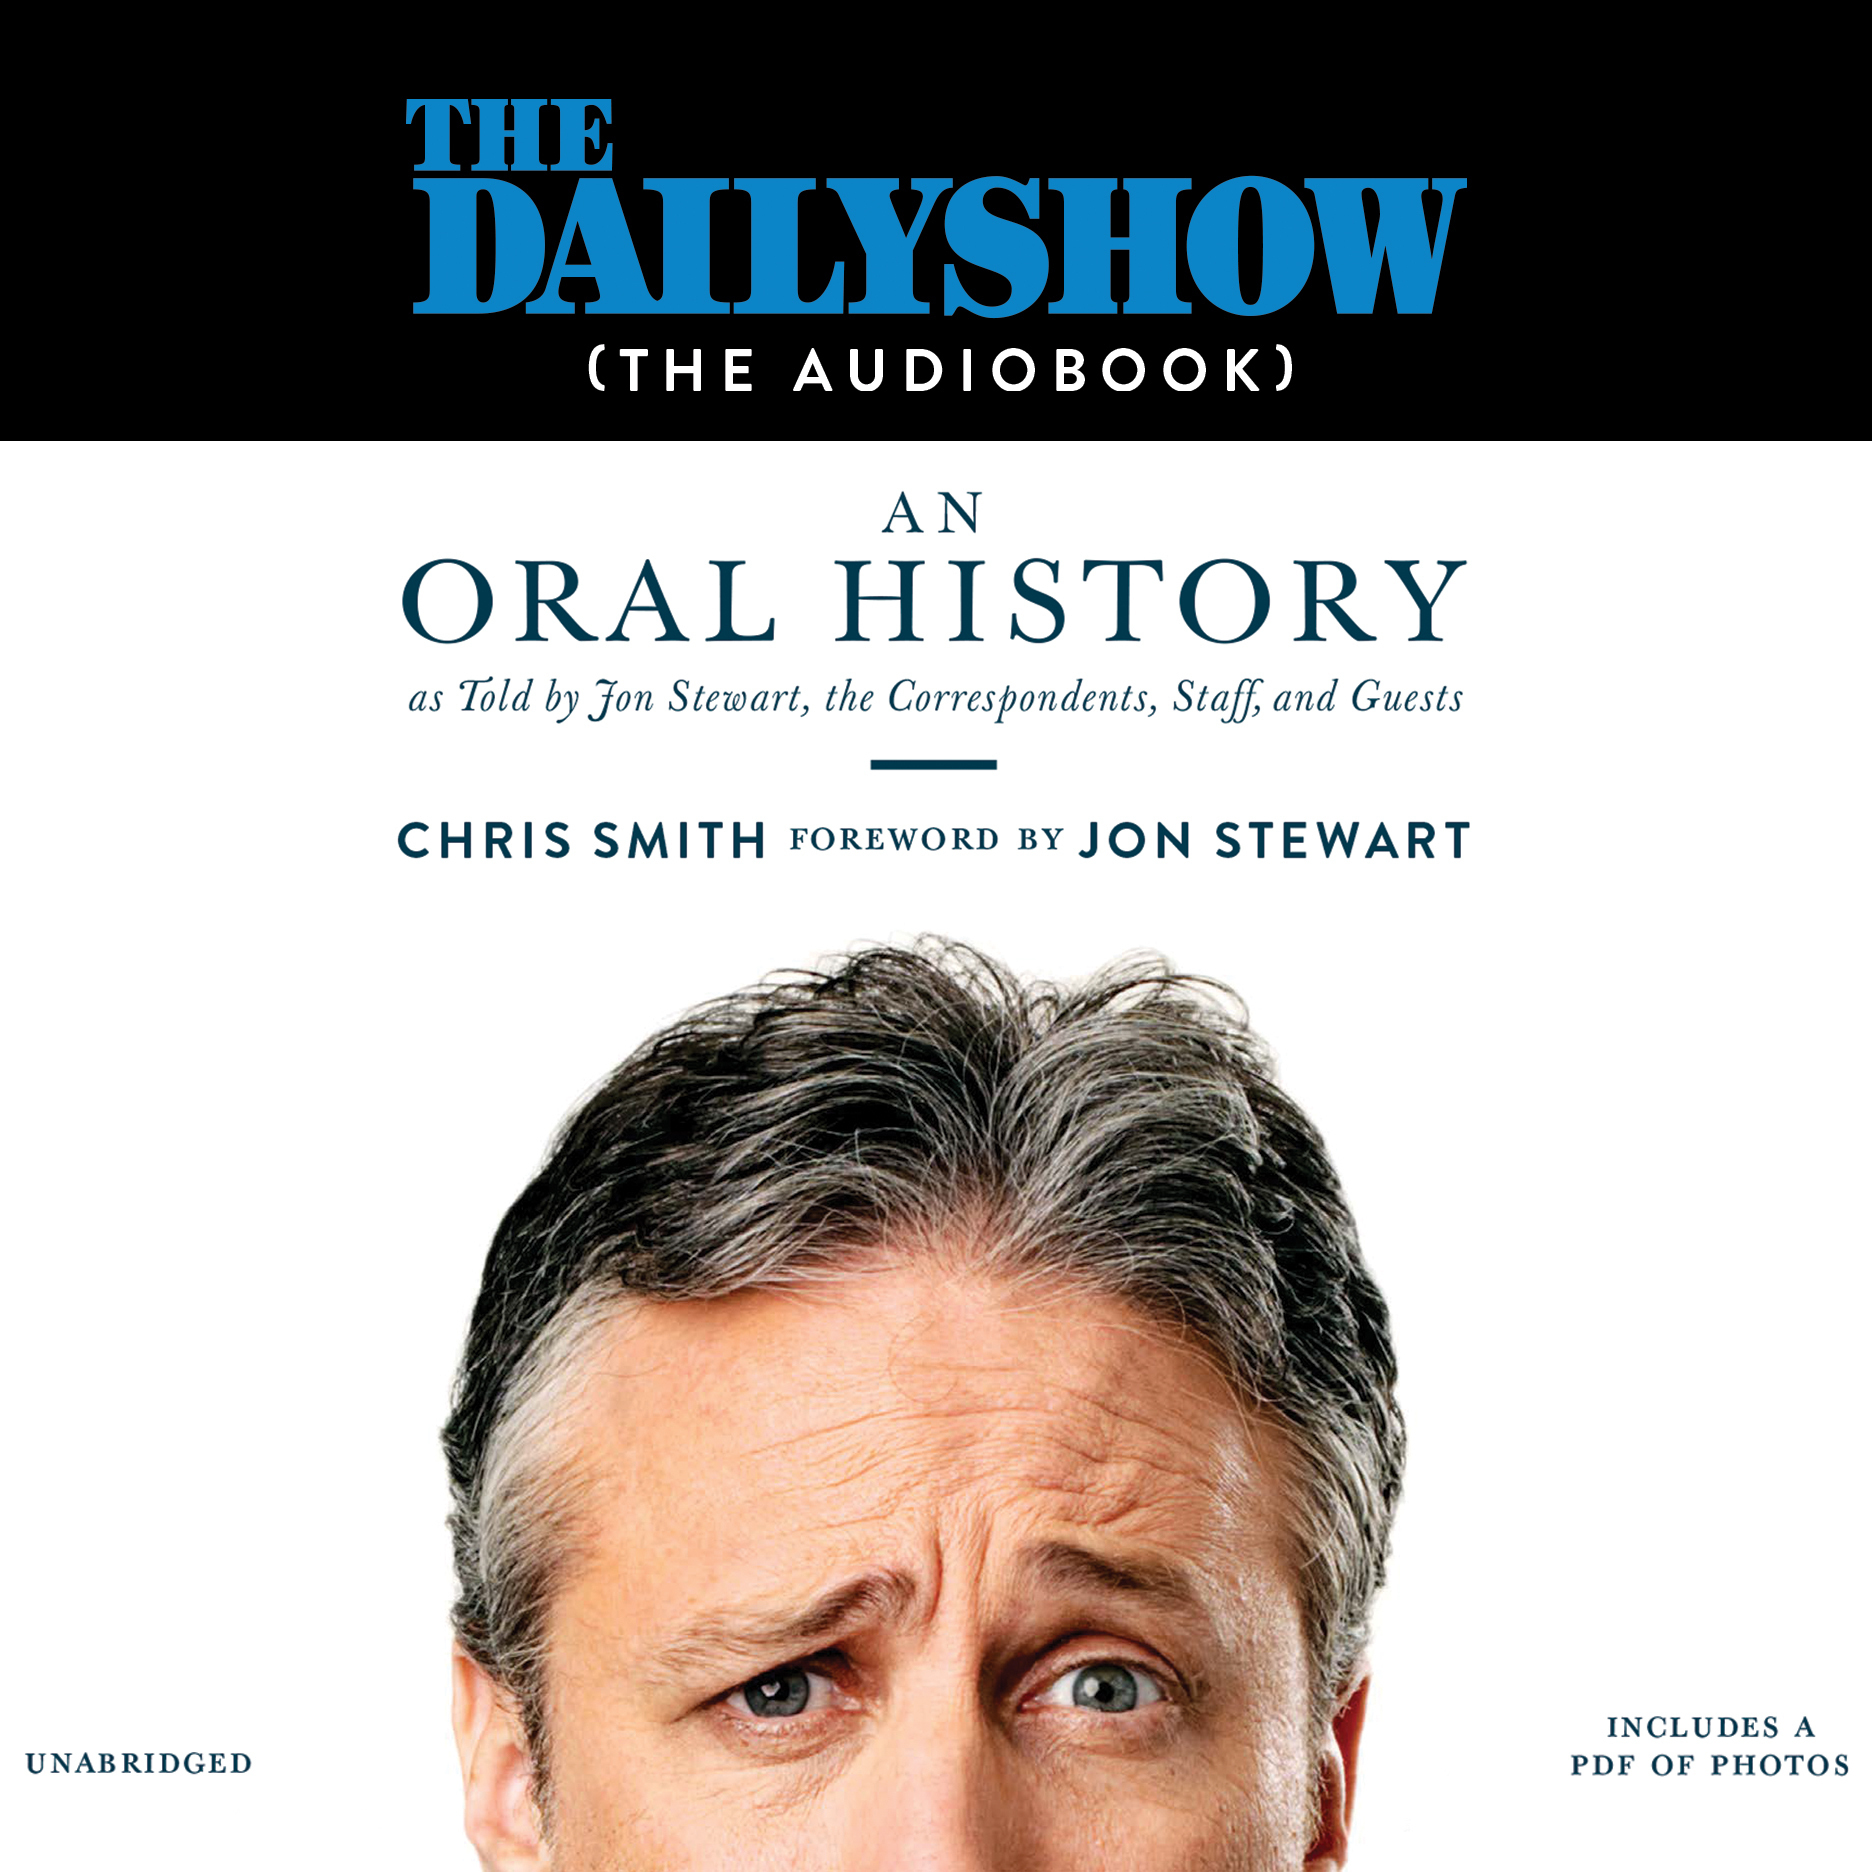 Printable The Daily Show (The AudioBook): An Oral History as Told by Jon Stewart, the Correspondents, Staff and Guests Audiobook Cover Art